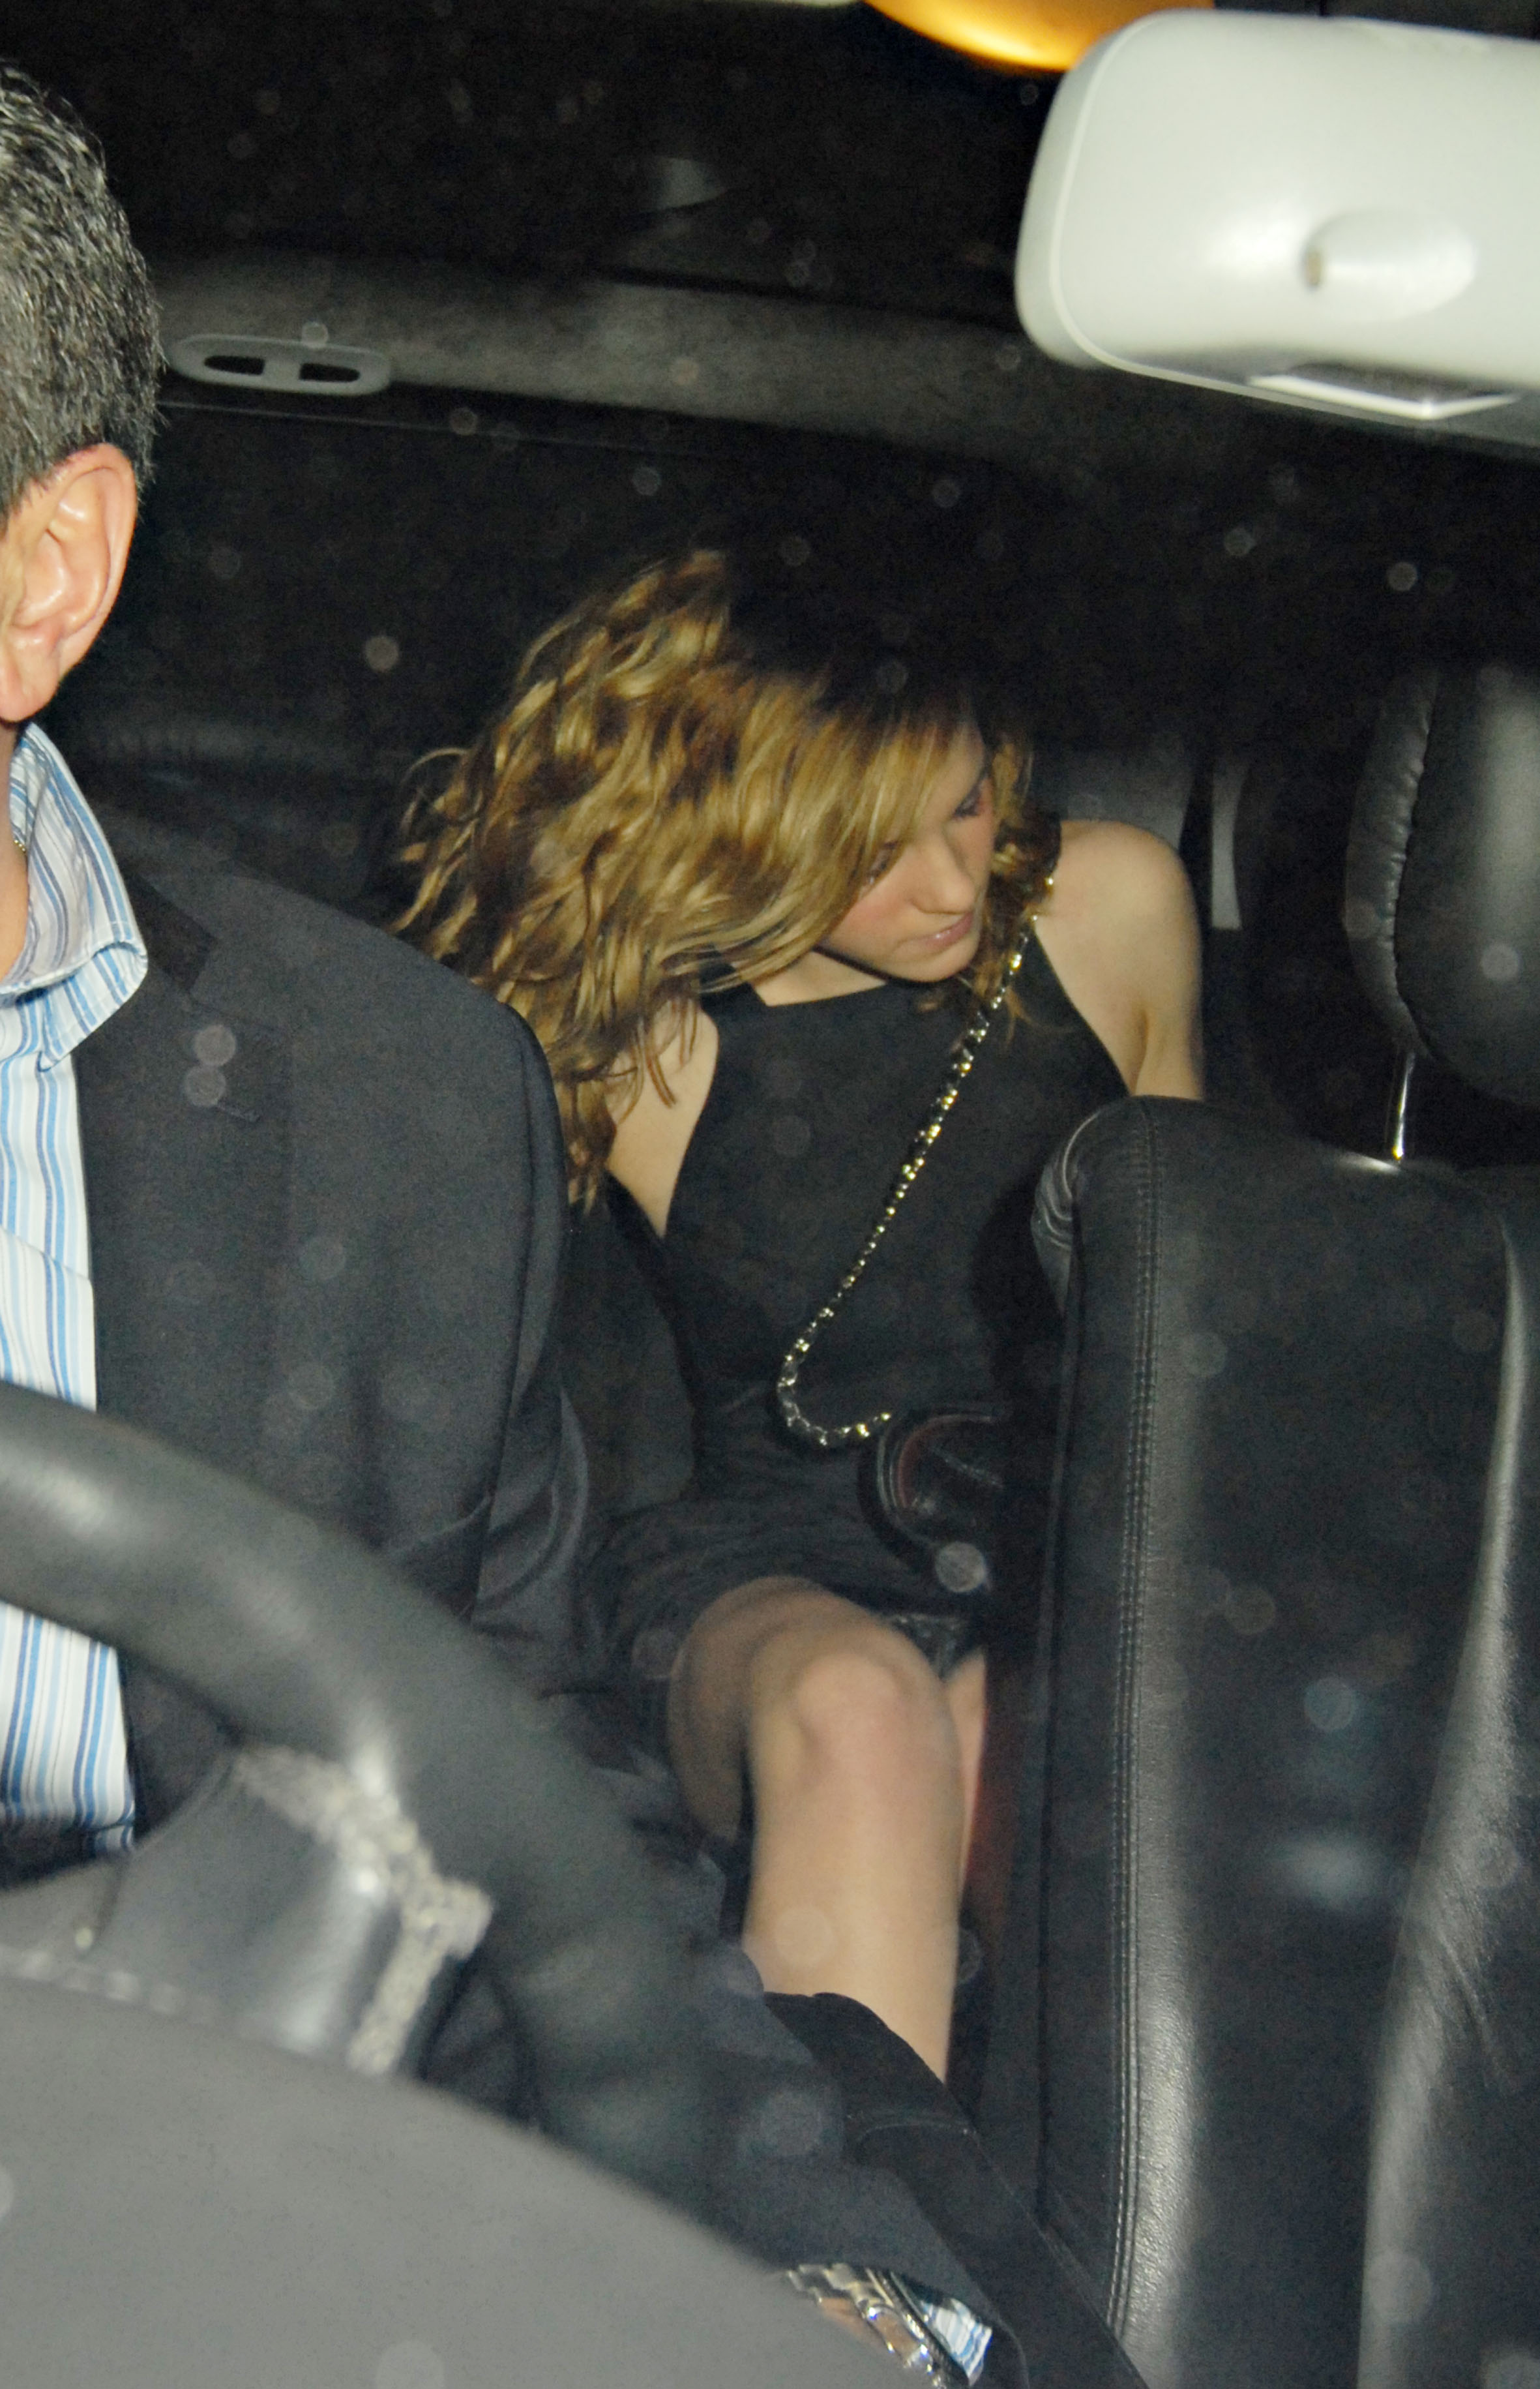 85452_celeb-city.org_Emma_Watson_arriving_for_her_18th_birthday_party_18_123_111lo.jpg